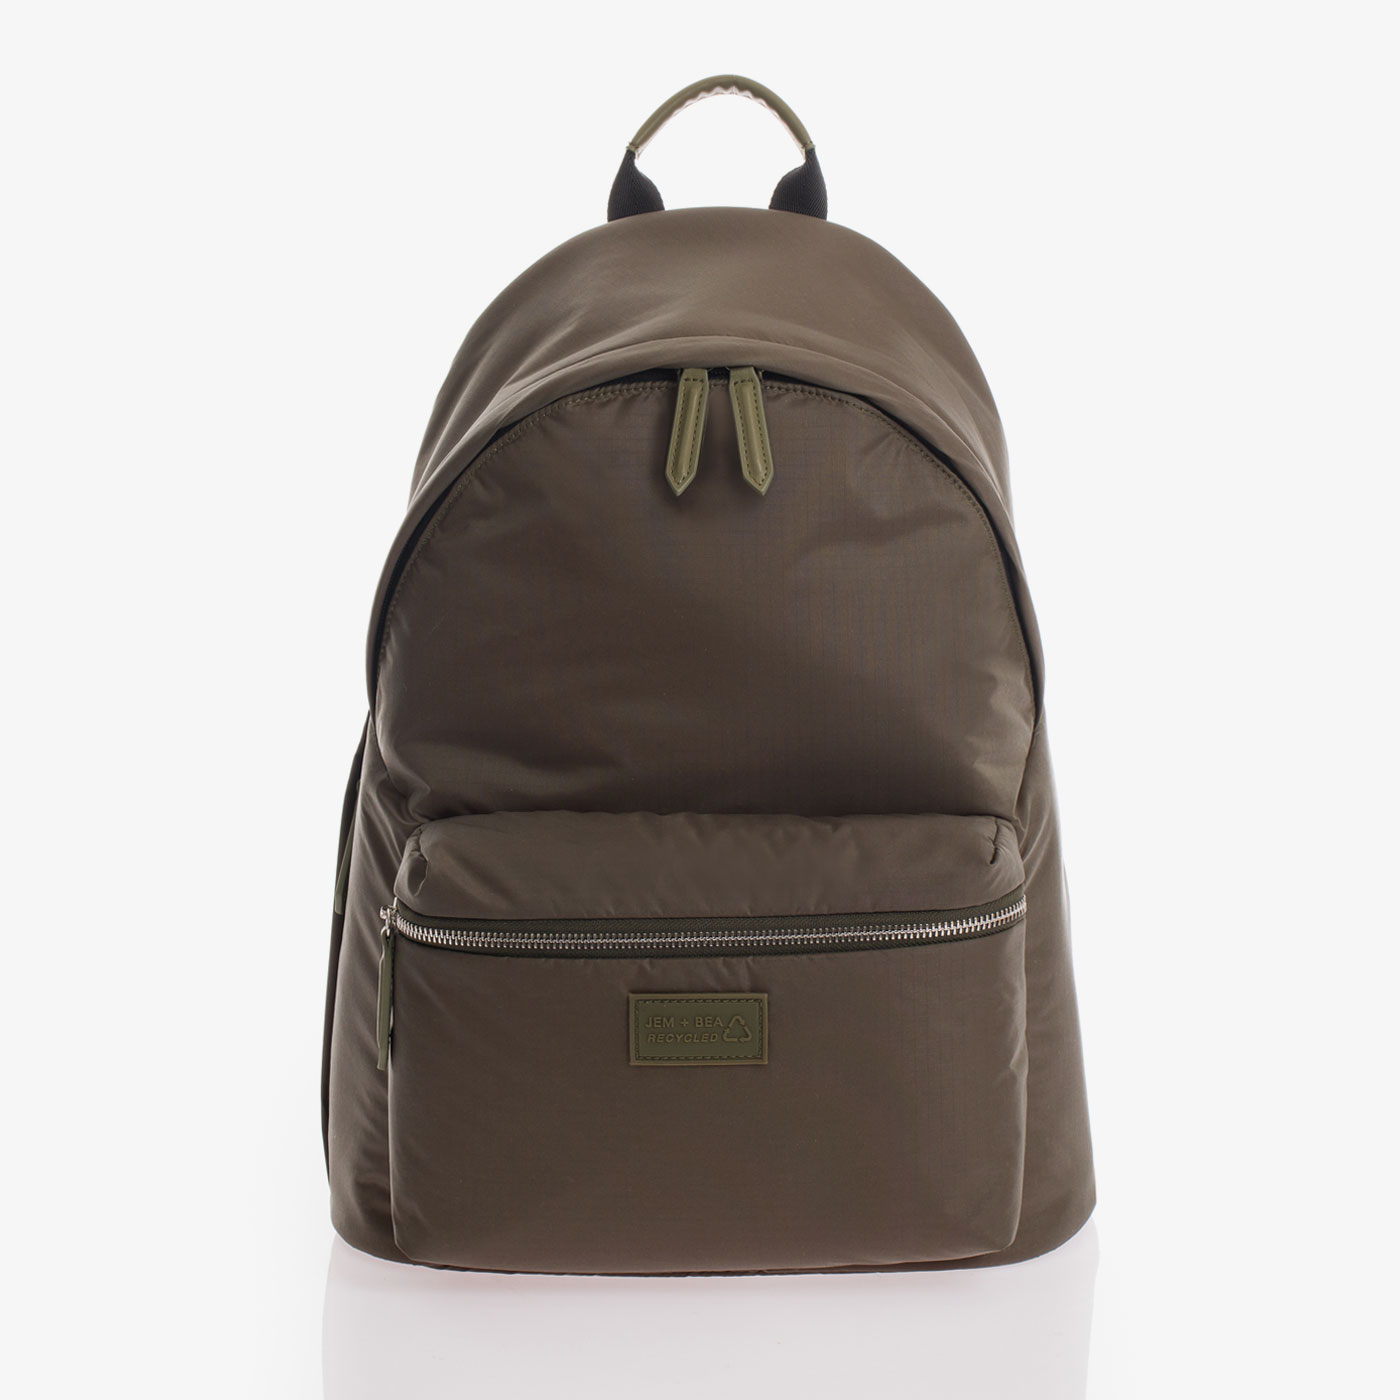 Khaki eco baby changing backpack